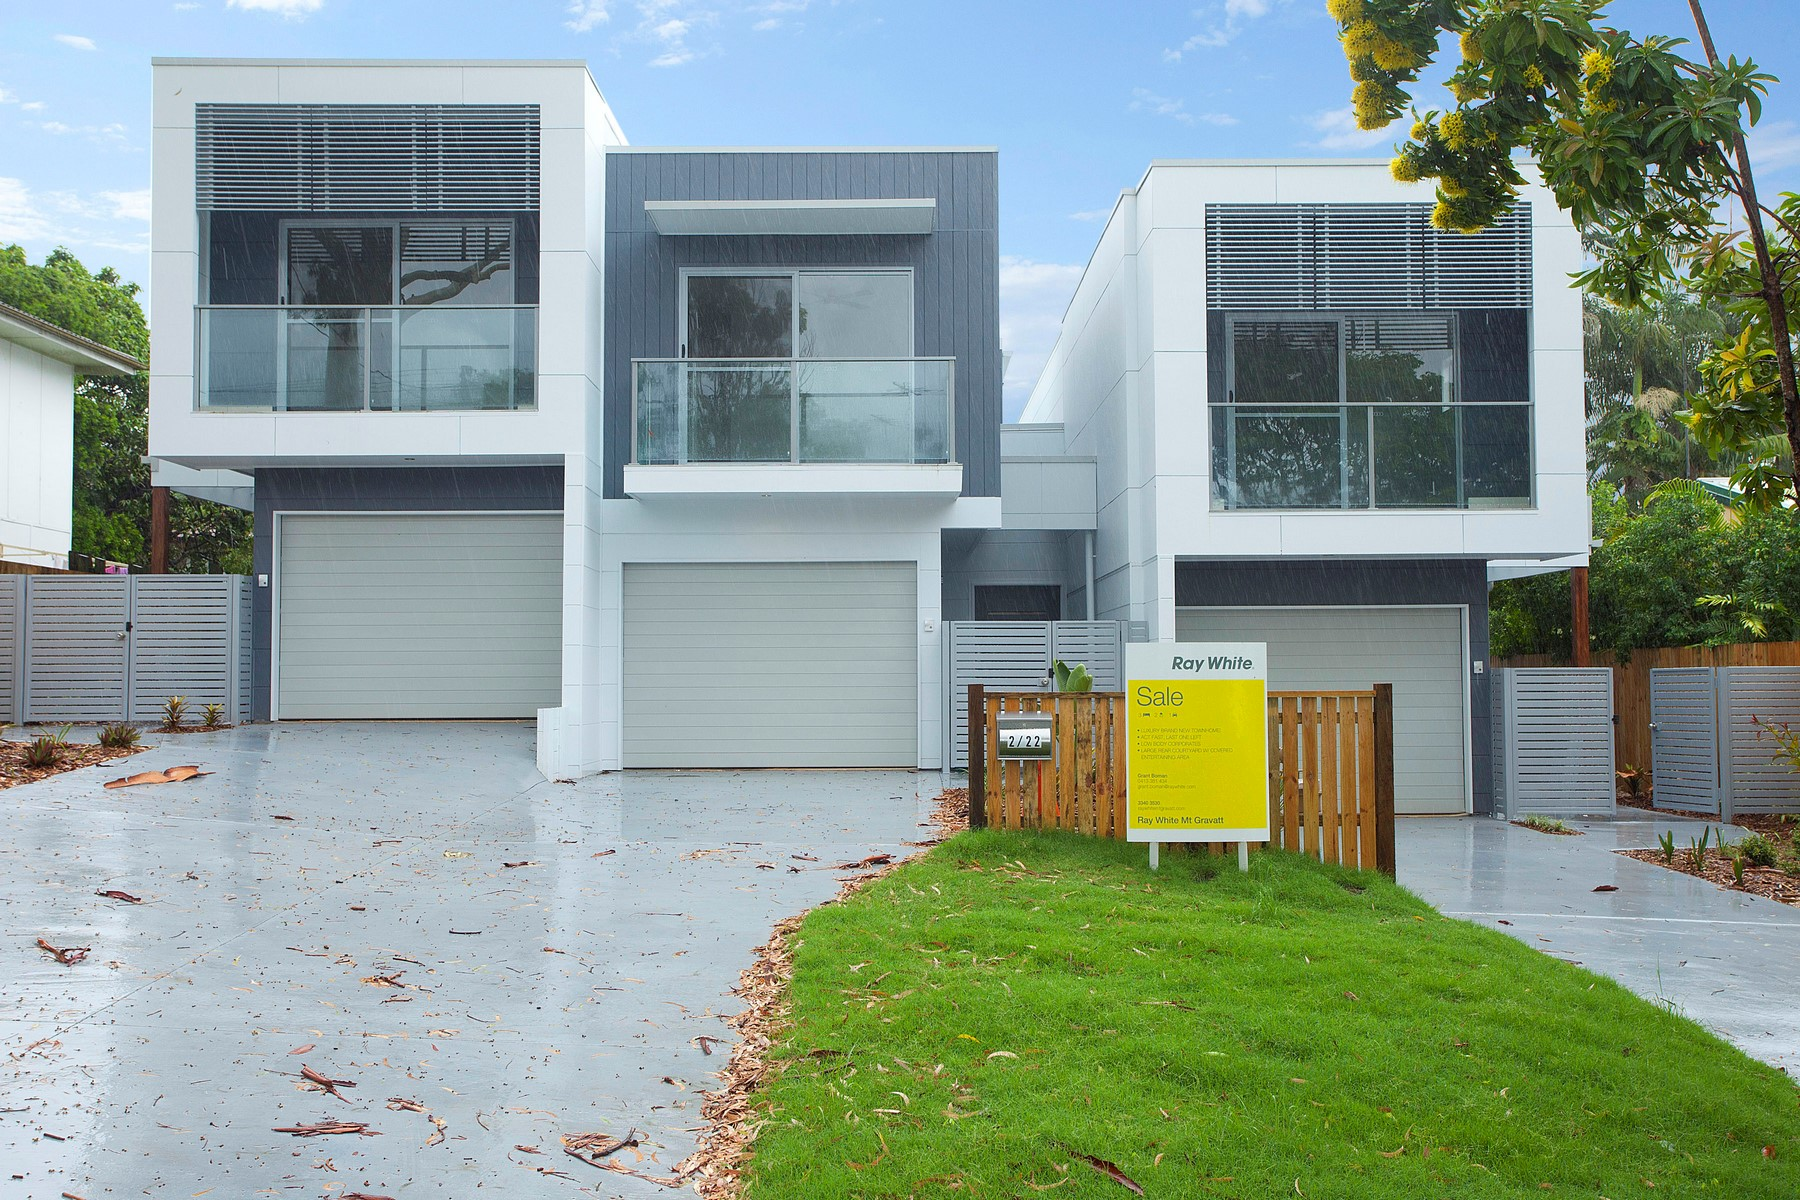 Brisbane building designer brisbane architect brisbane for Multi dwelling house designs